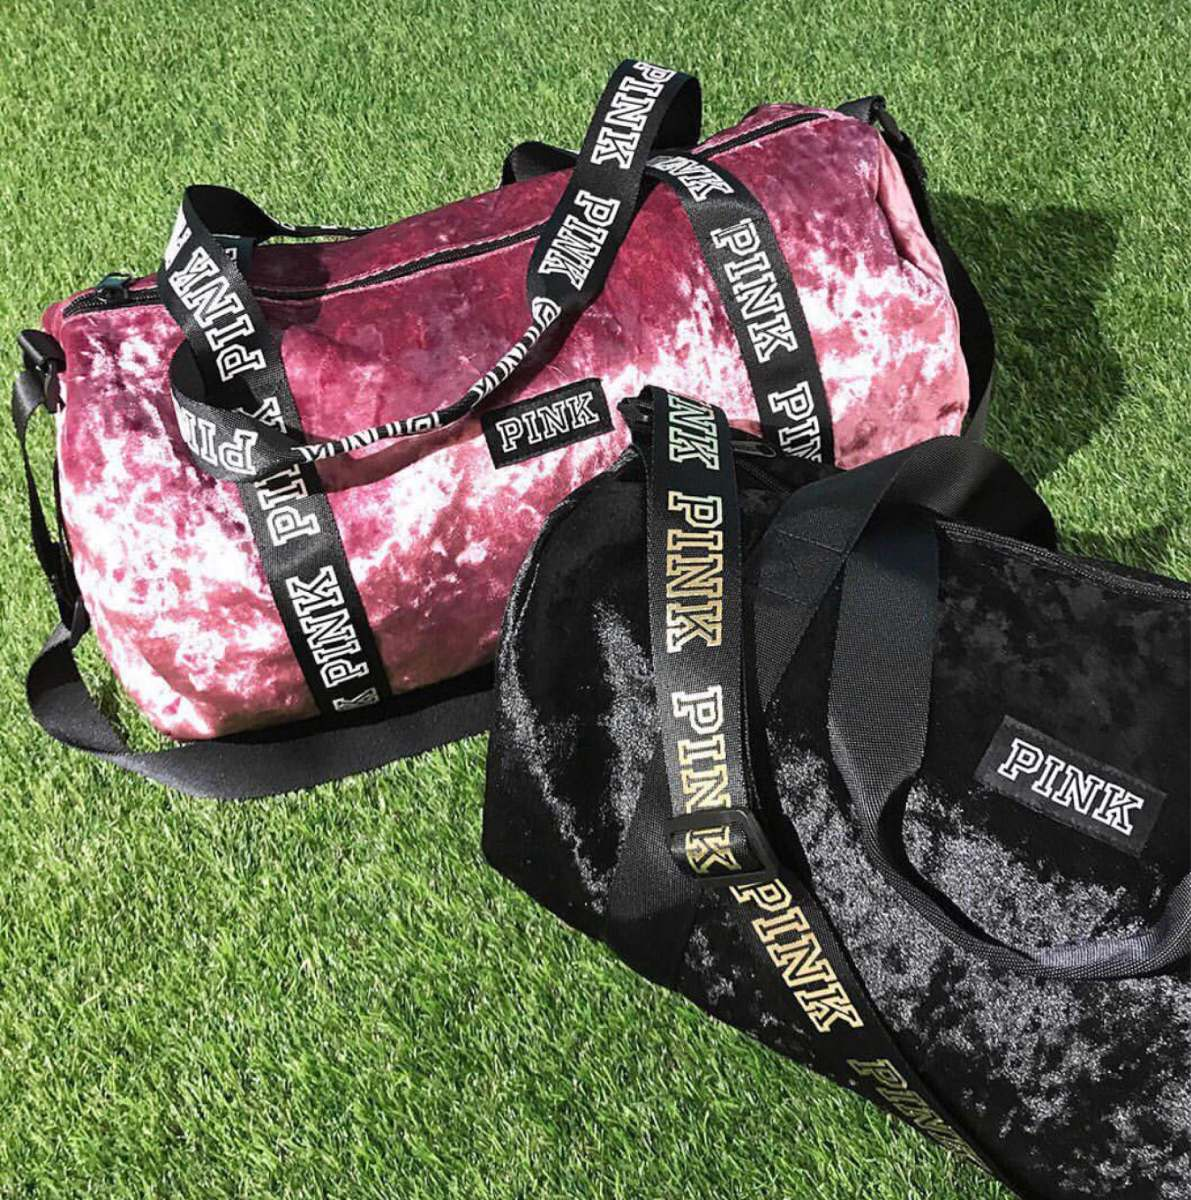 Sports Bags Pink Victoria Secret  40afce9a8bee0